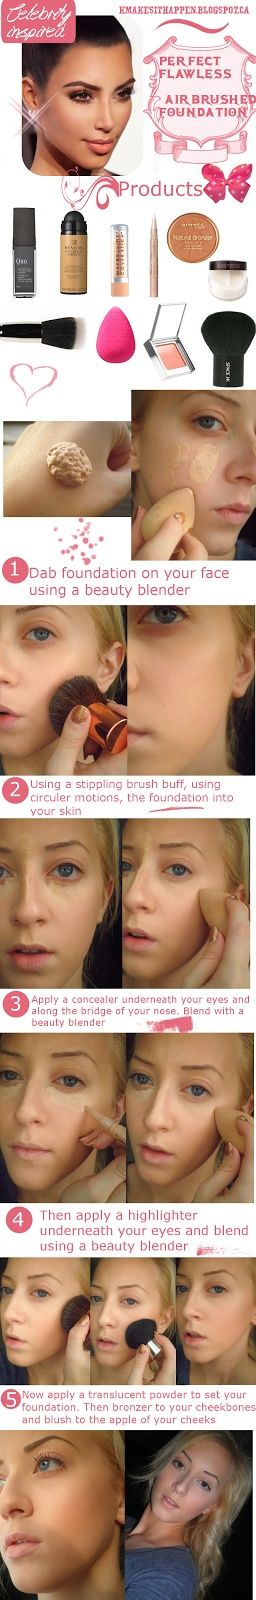 makeup magic: MAKEUP TRICKS - Flawless, Airbrushed Looking Foundation